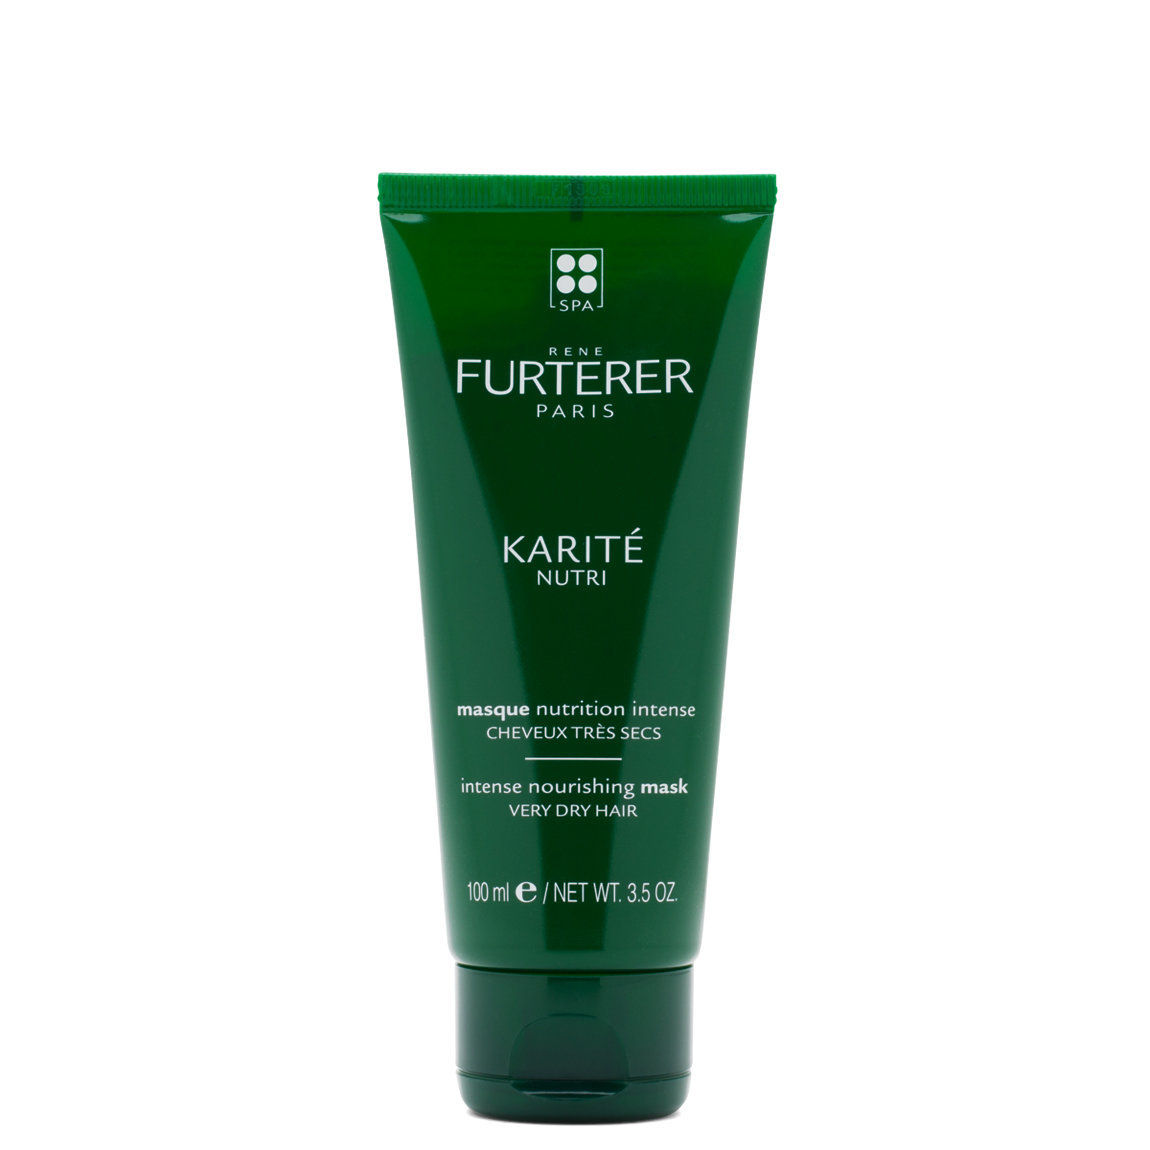 Rene Furterer Karite Nutri Intense Nourishing Mask 3.5 oz product smear.